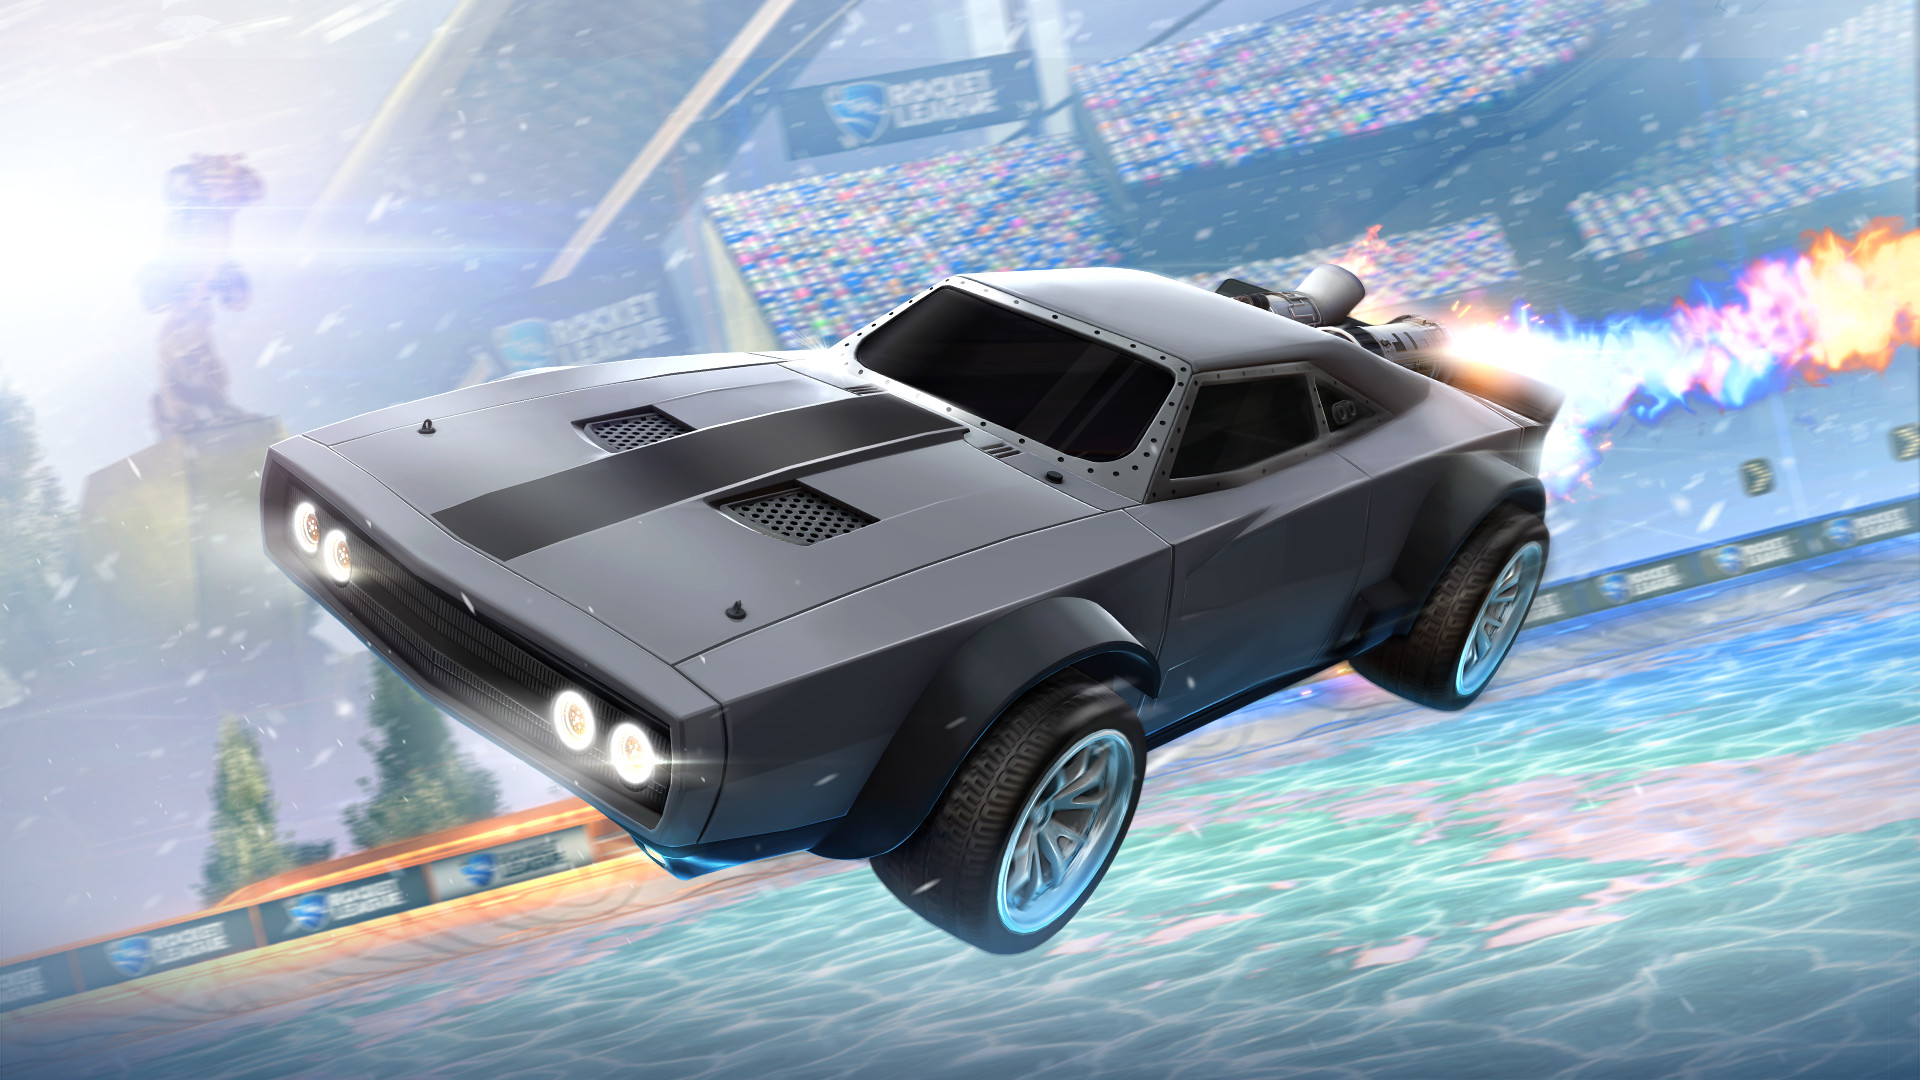 Rocket League  - The Fate of the Furious Ice Charger screenshot